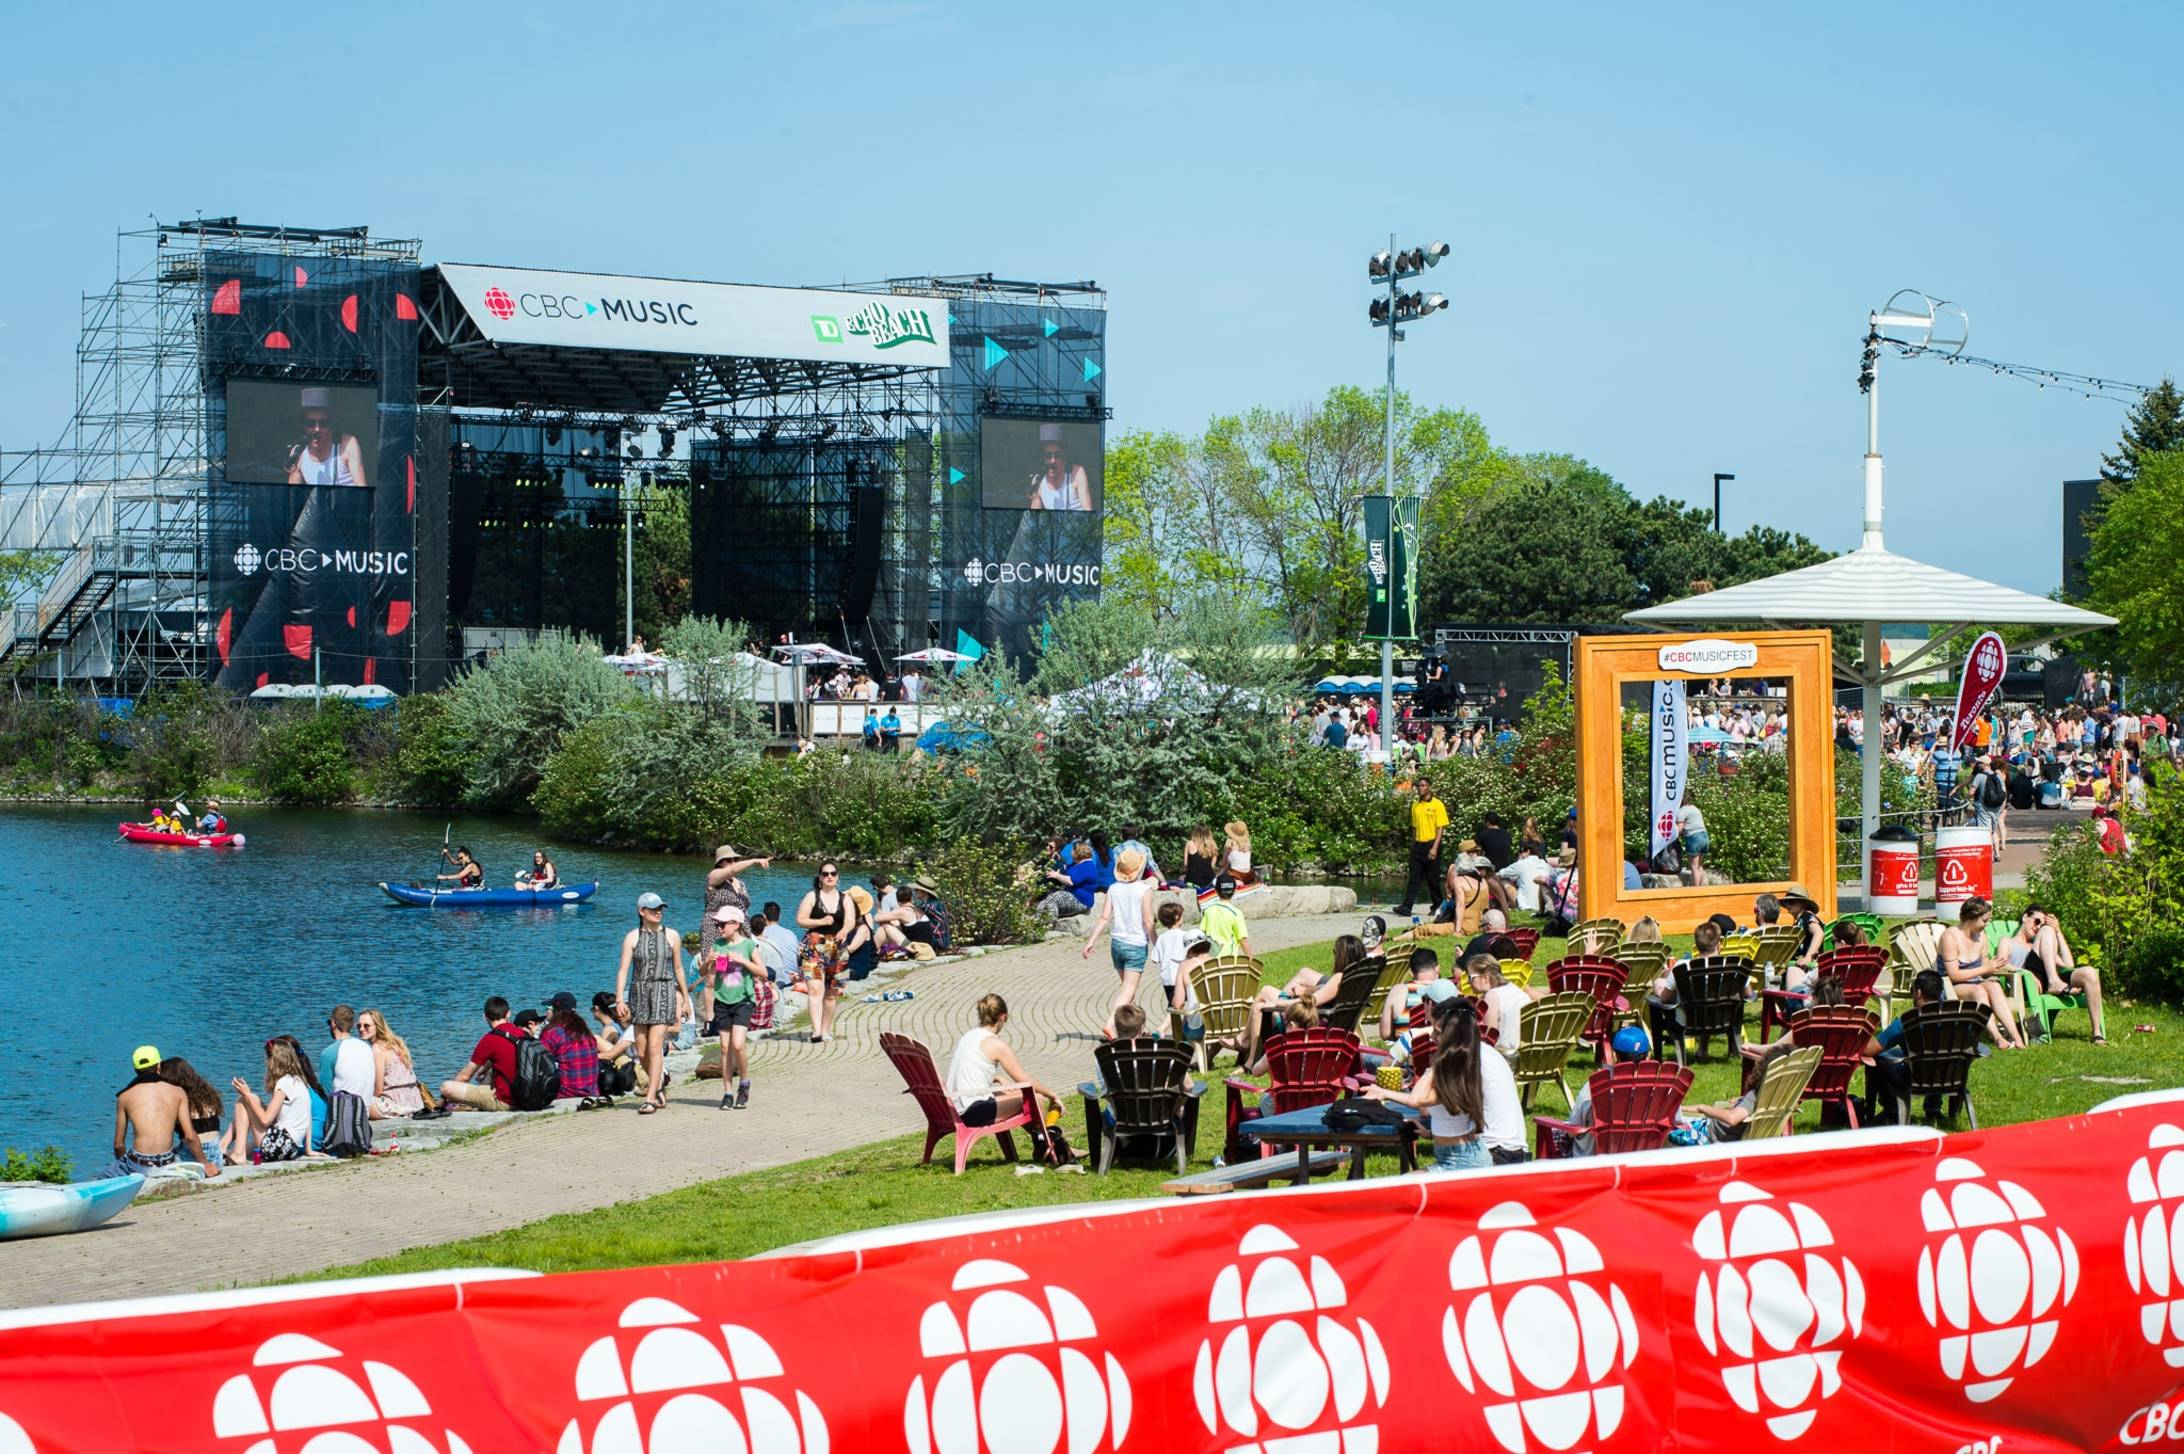 PHOTO: Event Grounds at CBC Music Fest